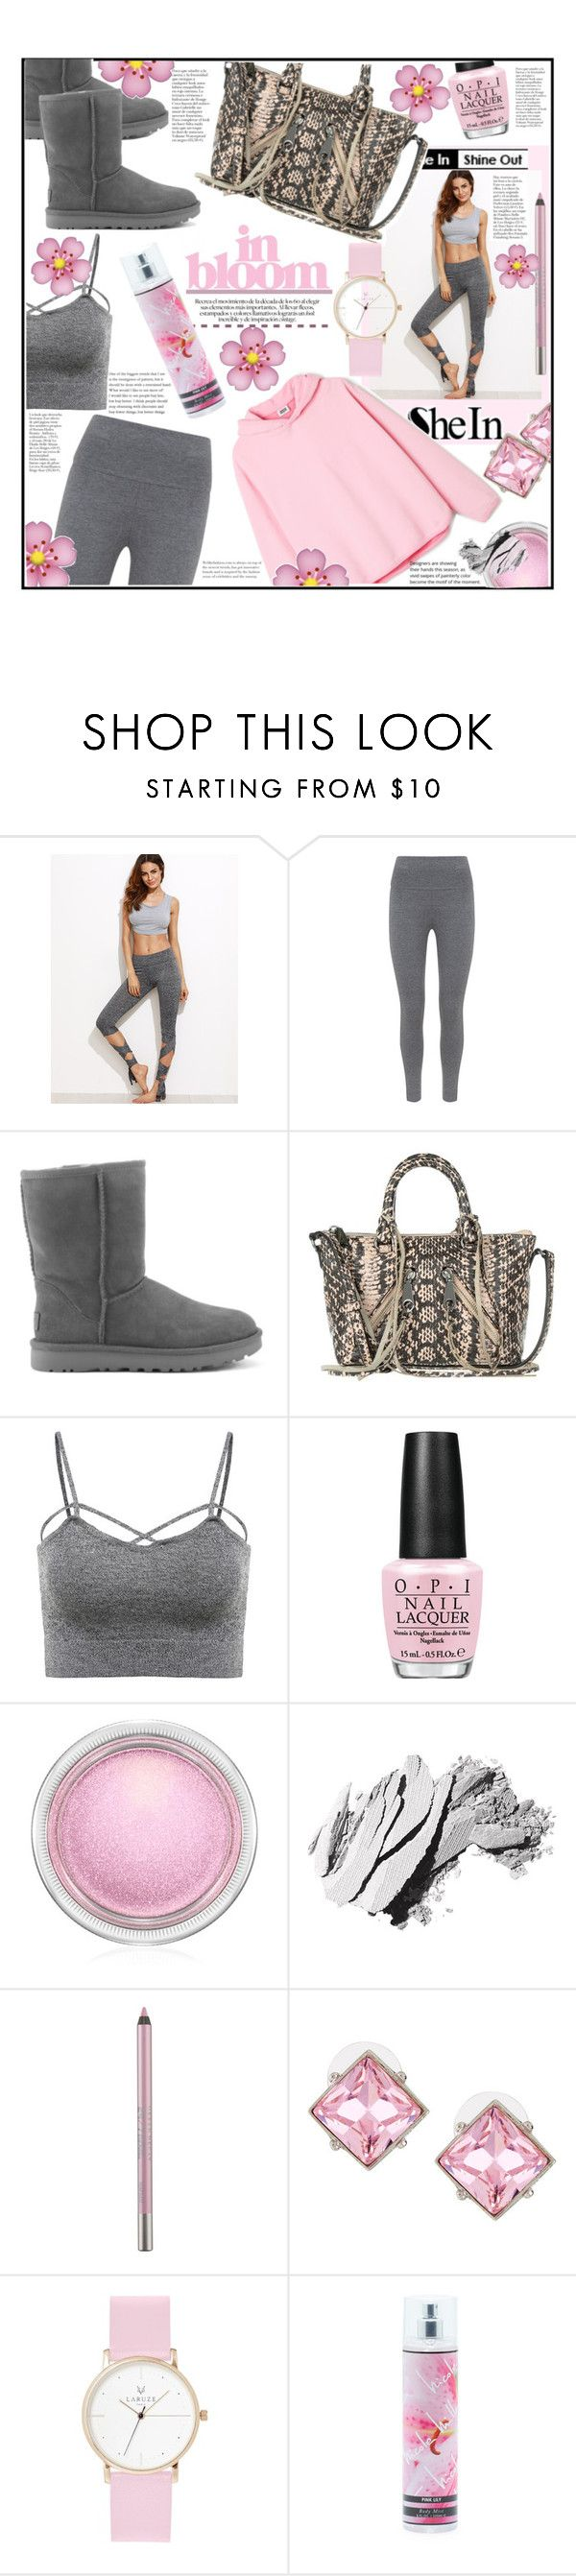 """BLOOM"" by jckallan ❤ liked on Polyvore featuring Mint Velvet, UGG Australia, Rebecca Minkoff, OPI, MAC Cosmetics, Bobbi Brown Cosmetics, Urban Decay, Kenneth Jay Lane, Laruze and Nicole Miller"